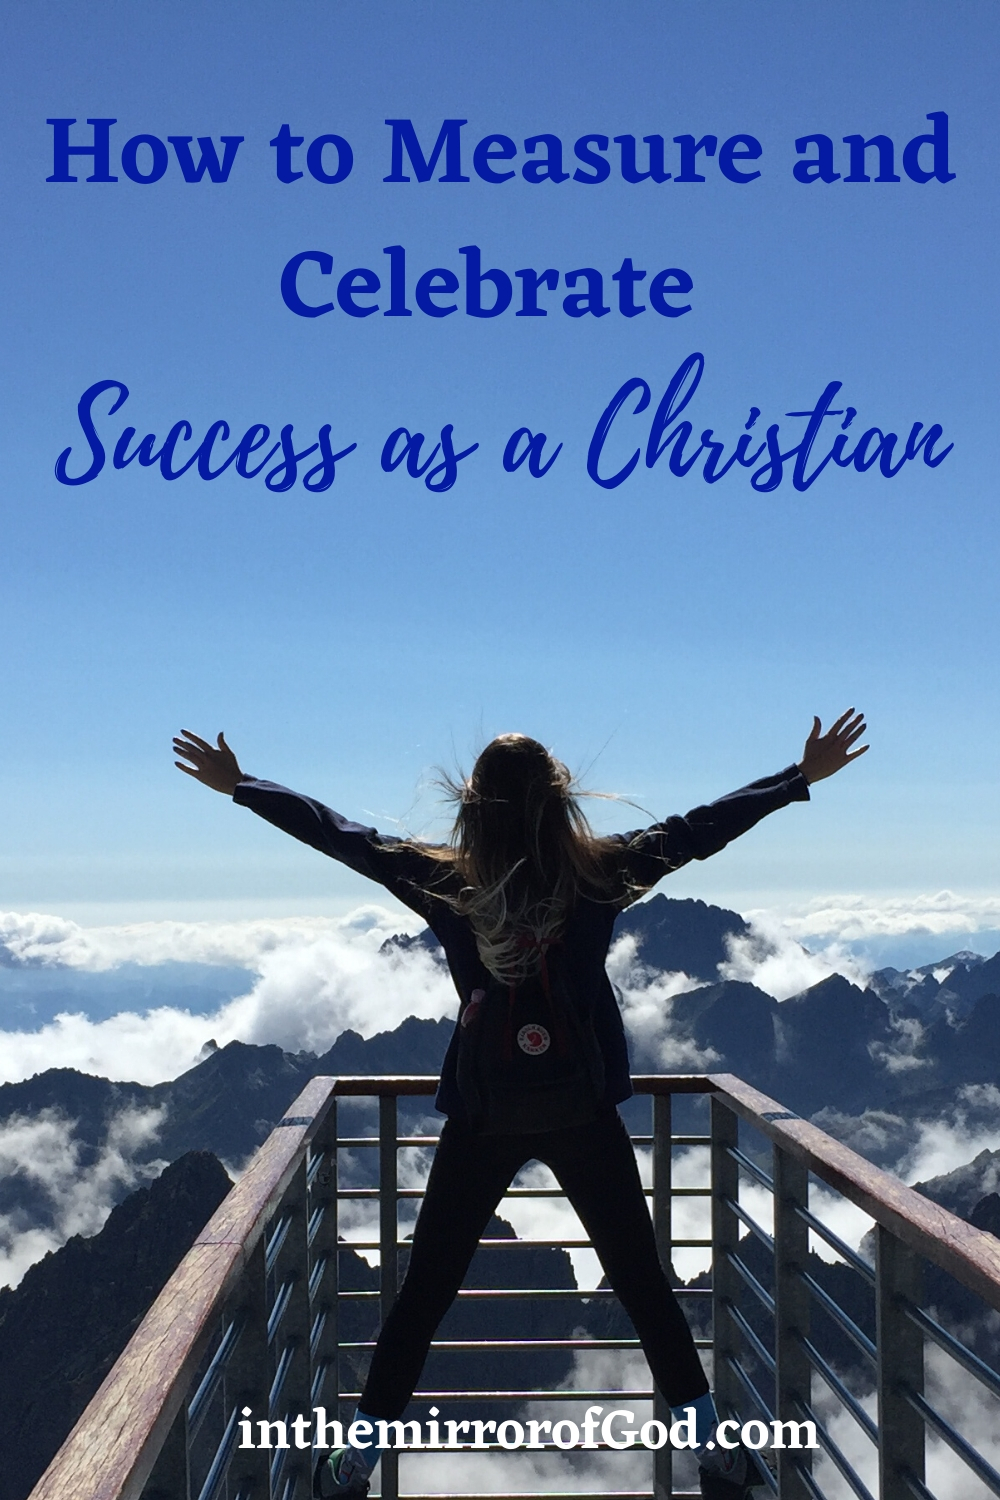 How to Measure and Celebrate Success as a Christian